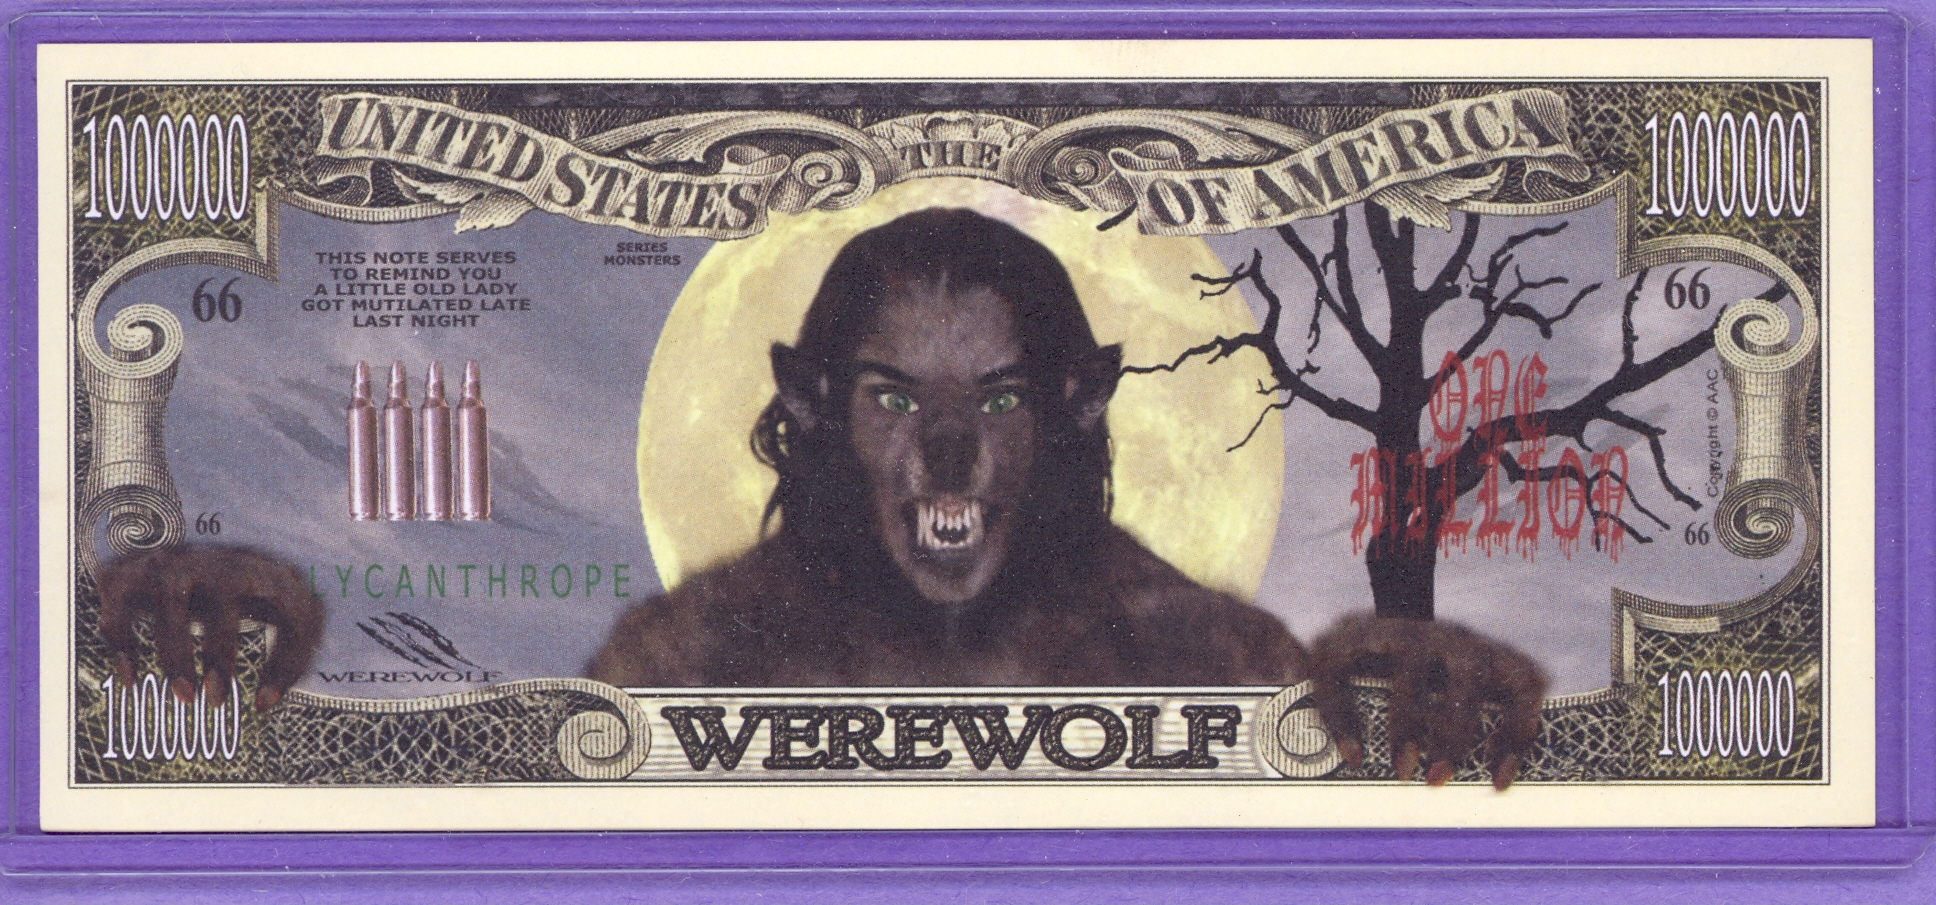 Werewolf $1,000,000 Novelty Note